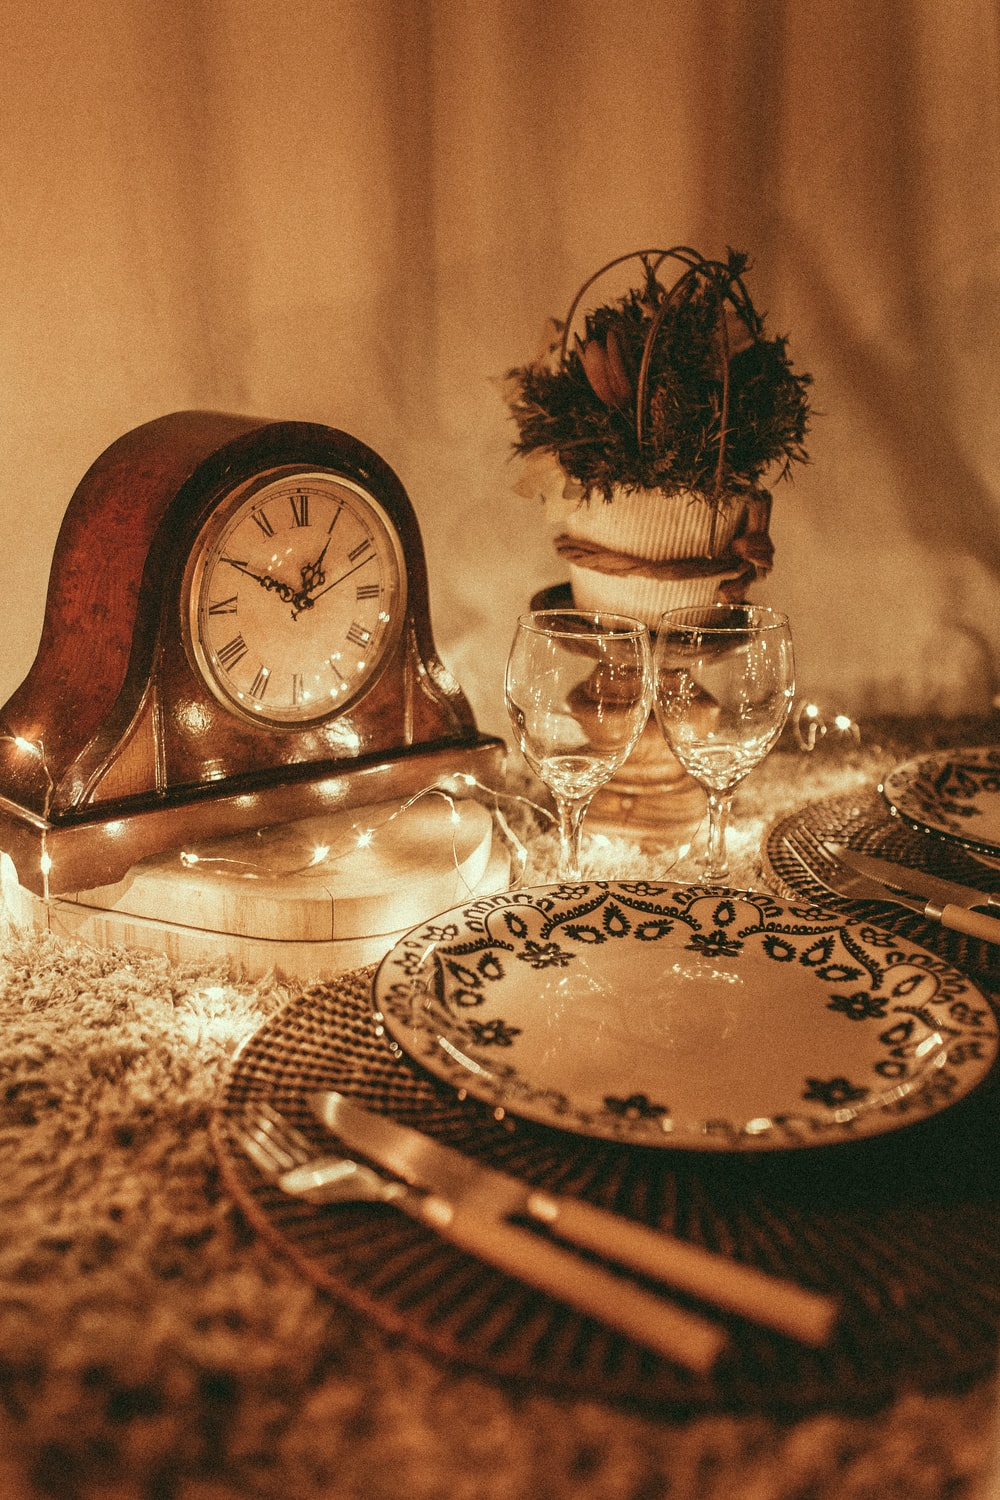 empty white plate near wine glasses and anniversary clock displaying 1:50